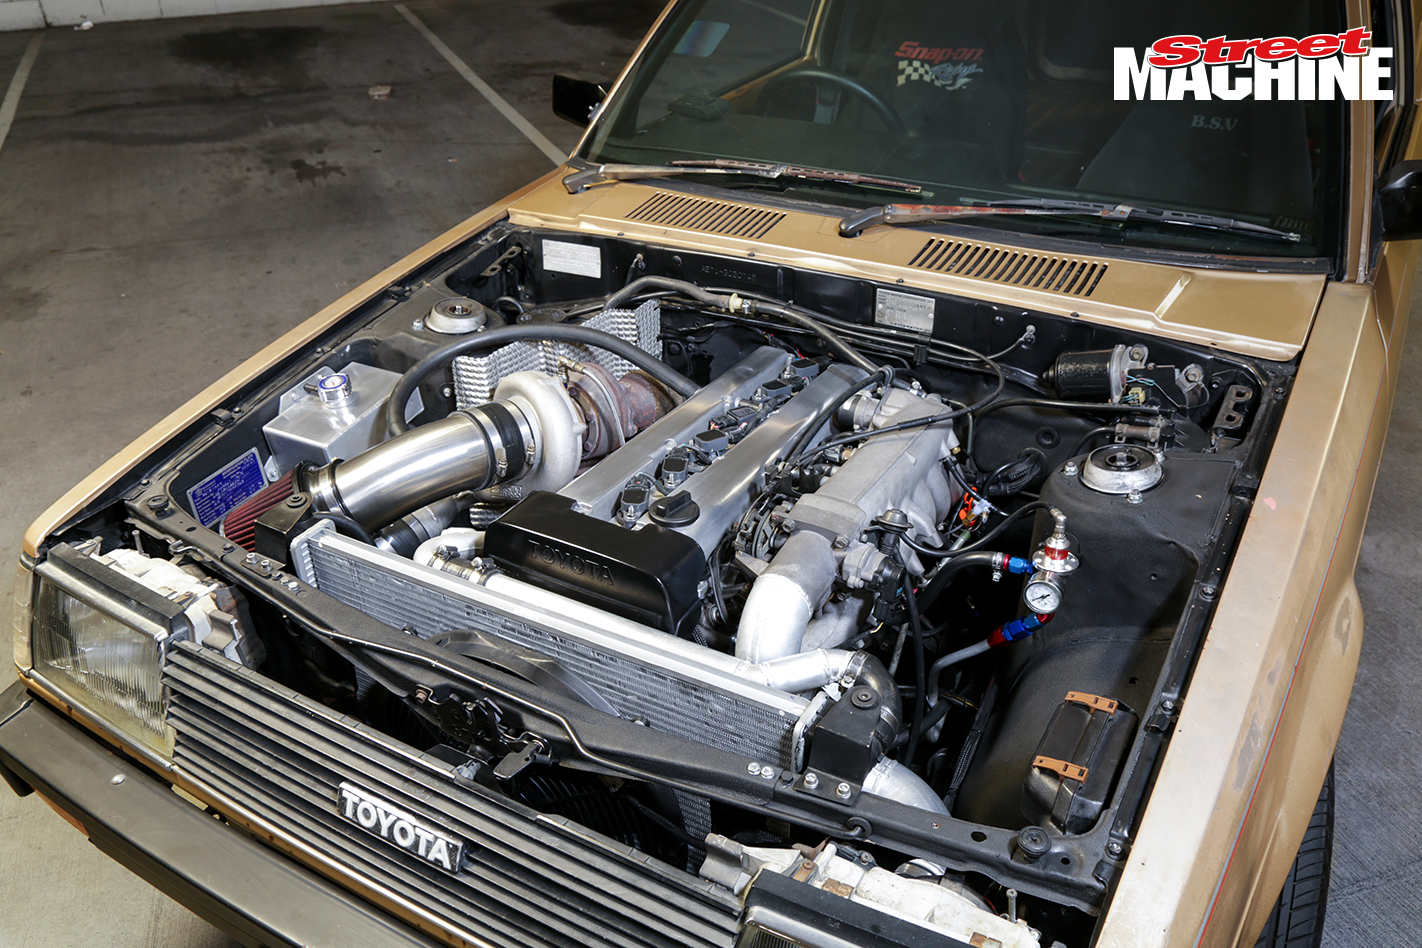 600RWHP 1JZ TOYOTA COROLLA PANEL VAN SLEEPER – READER'S CAR